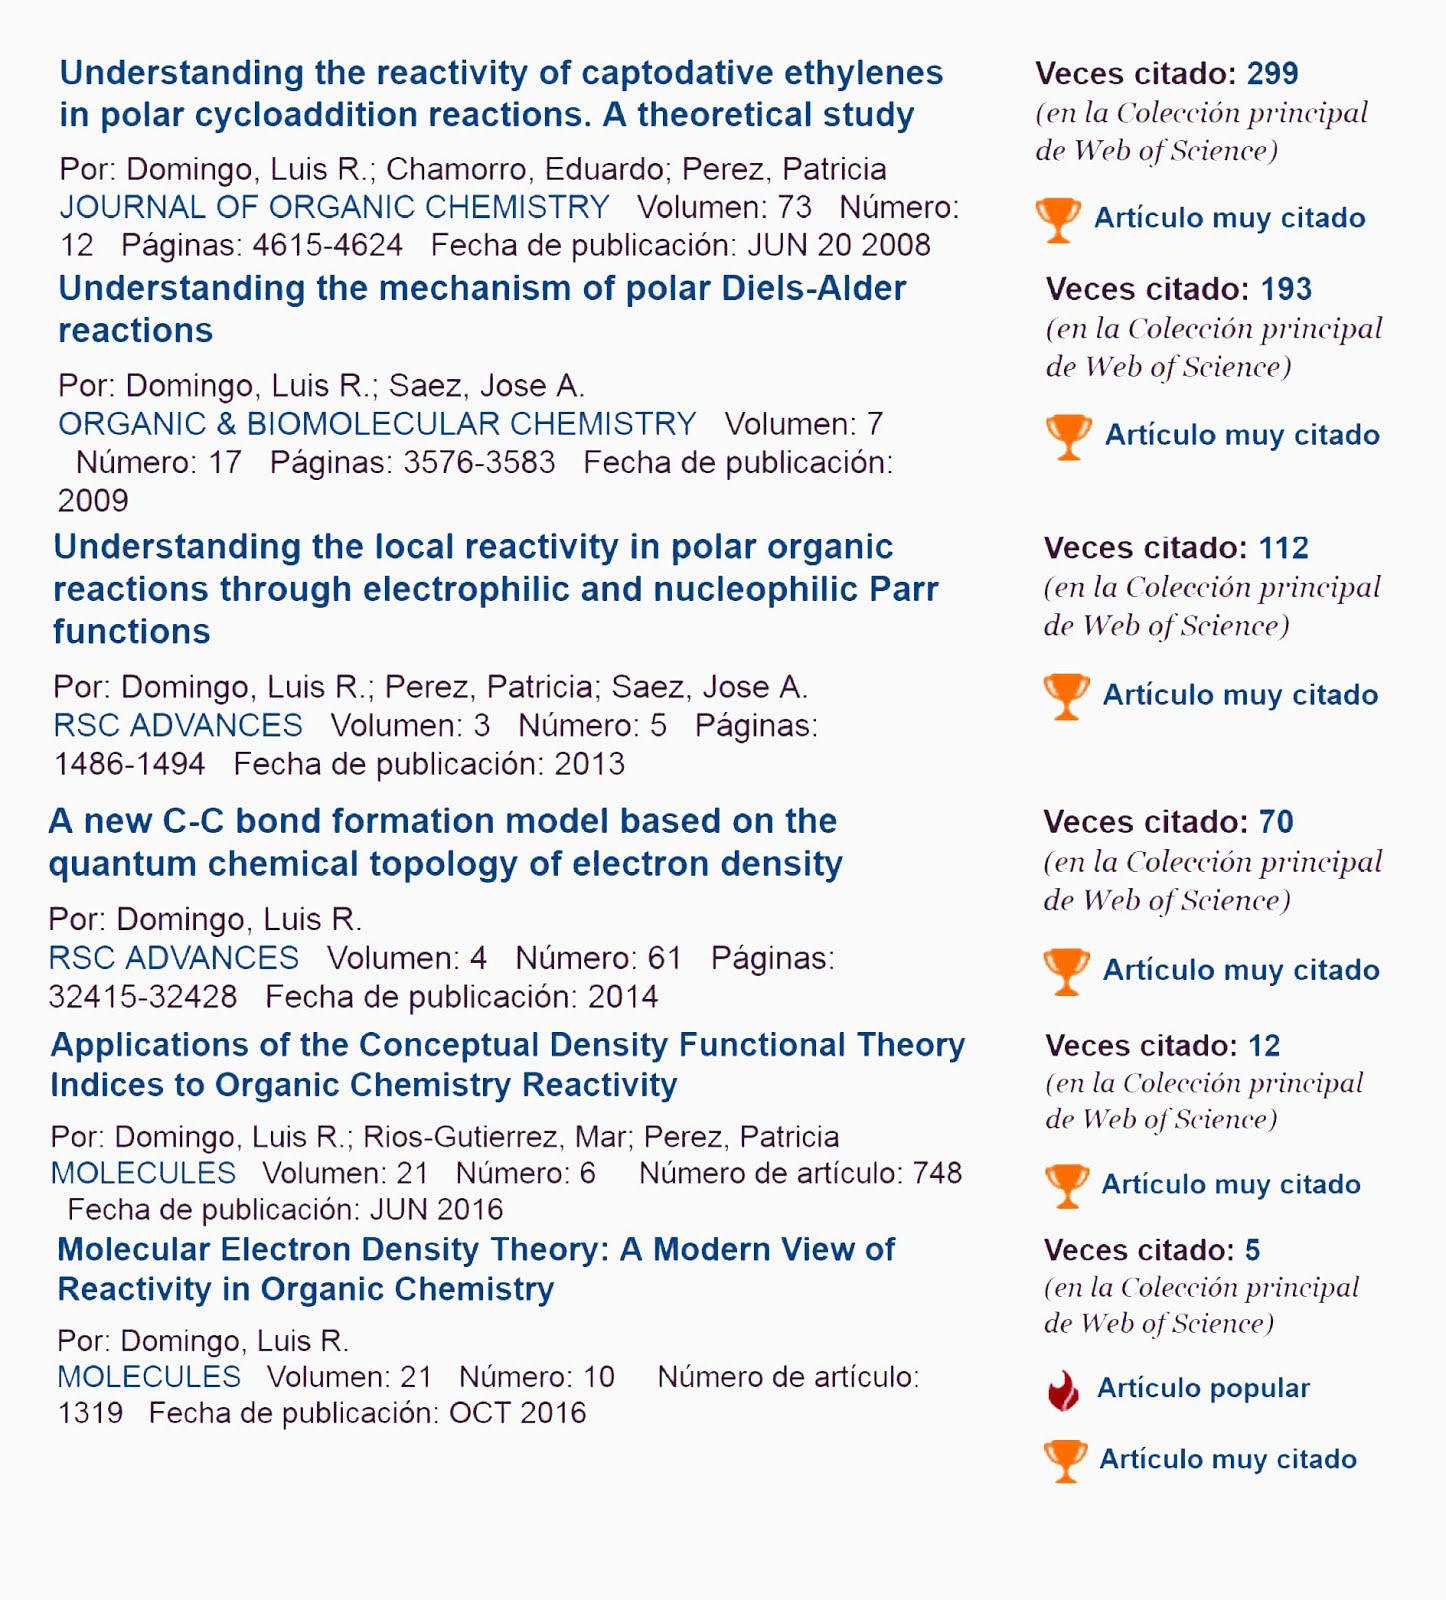 """Publications catalogued as """"very cited article"""" in the Web of Science."""